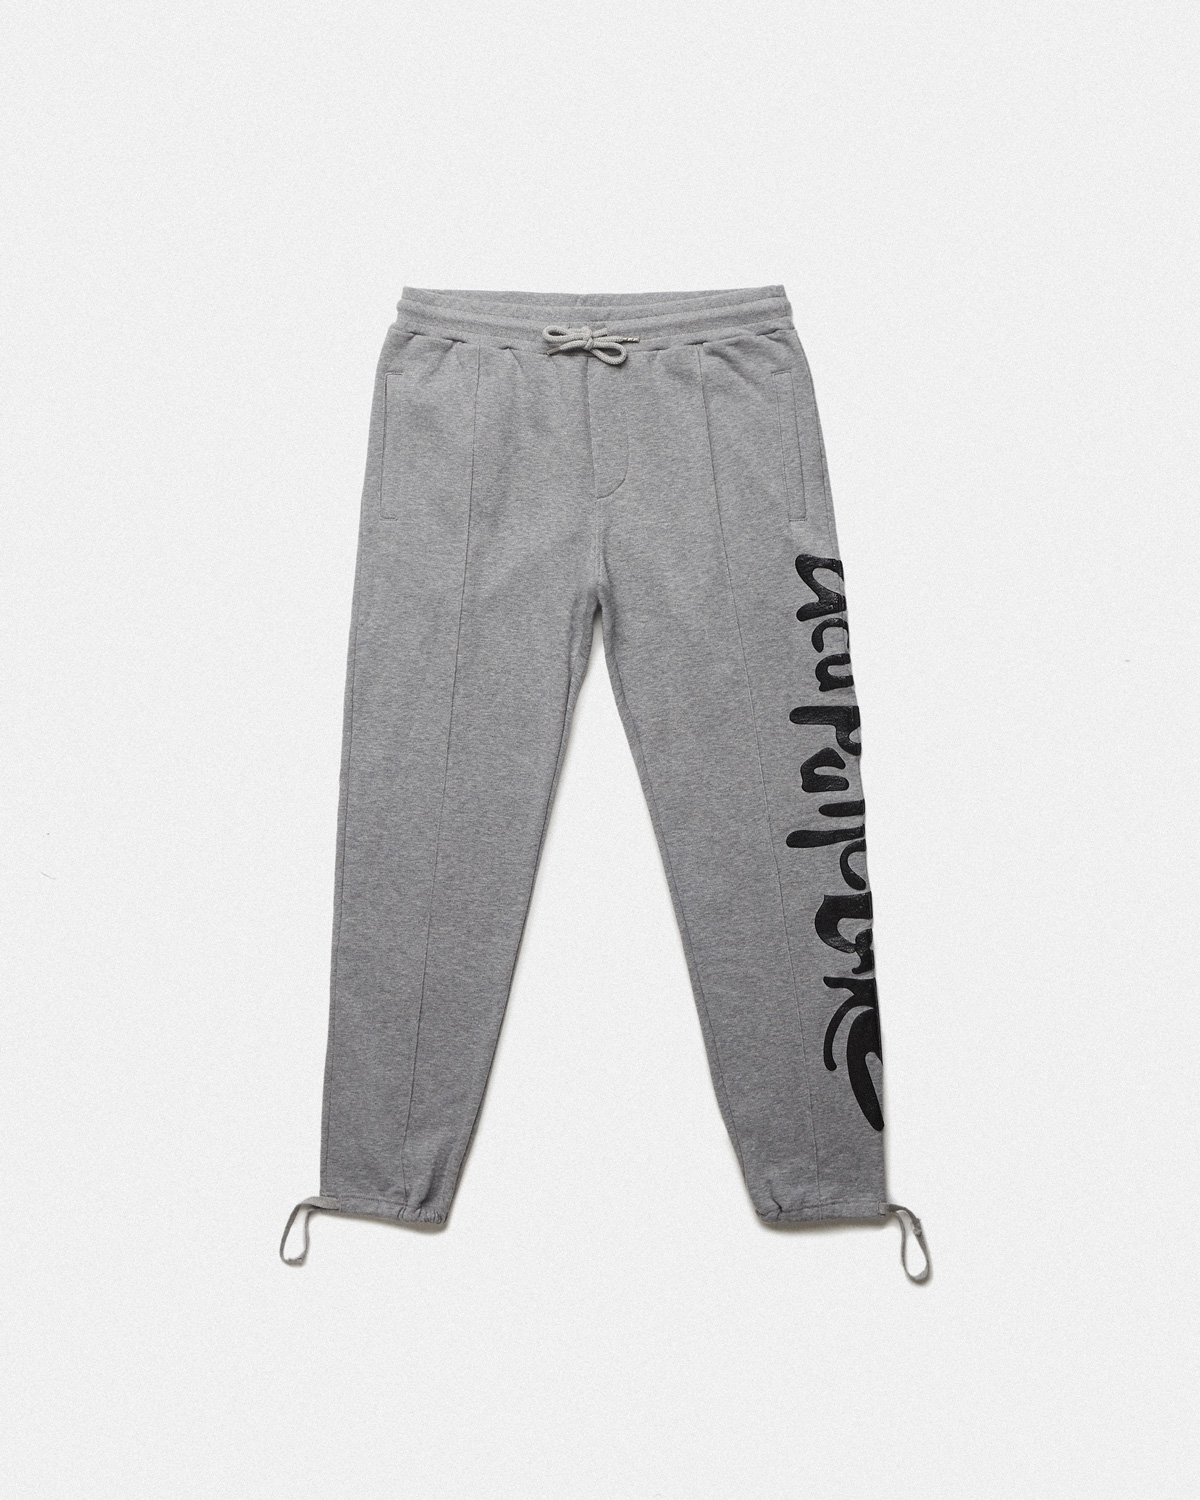 ACUPUNCTURE TRACK PANTS